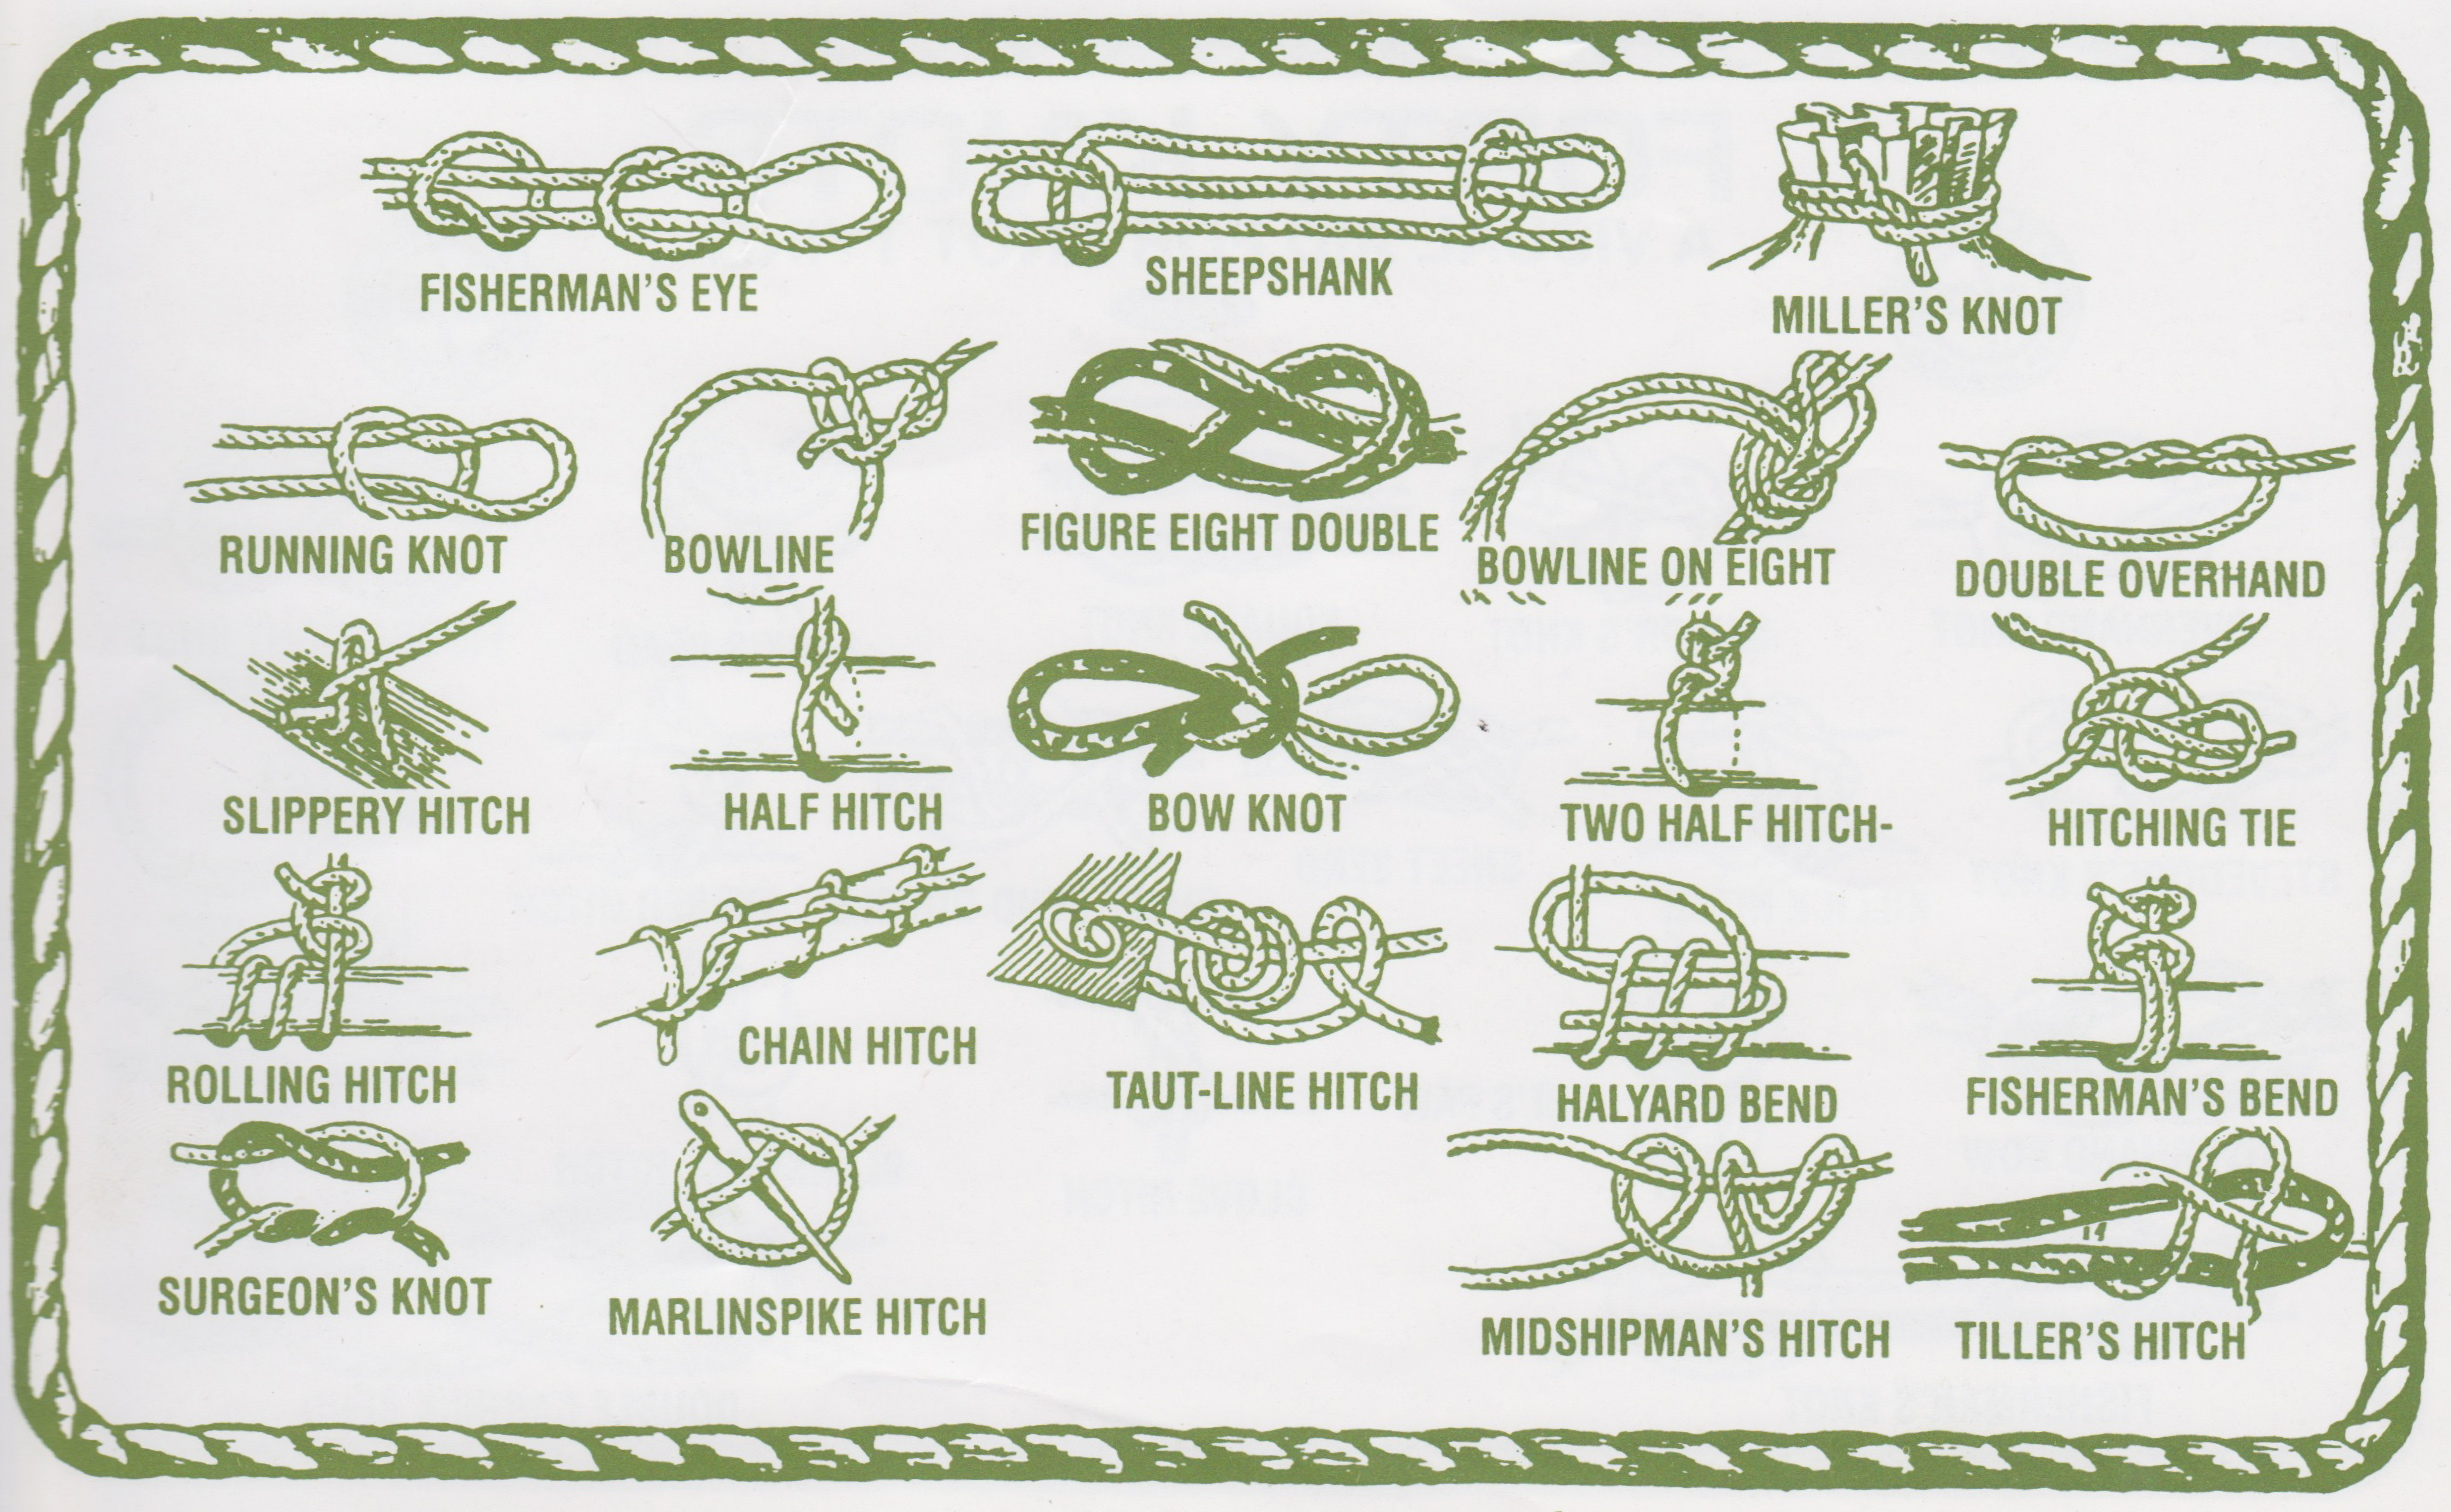 knot tying feather by feather navy knot tying diagrams knot tying diagrams